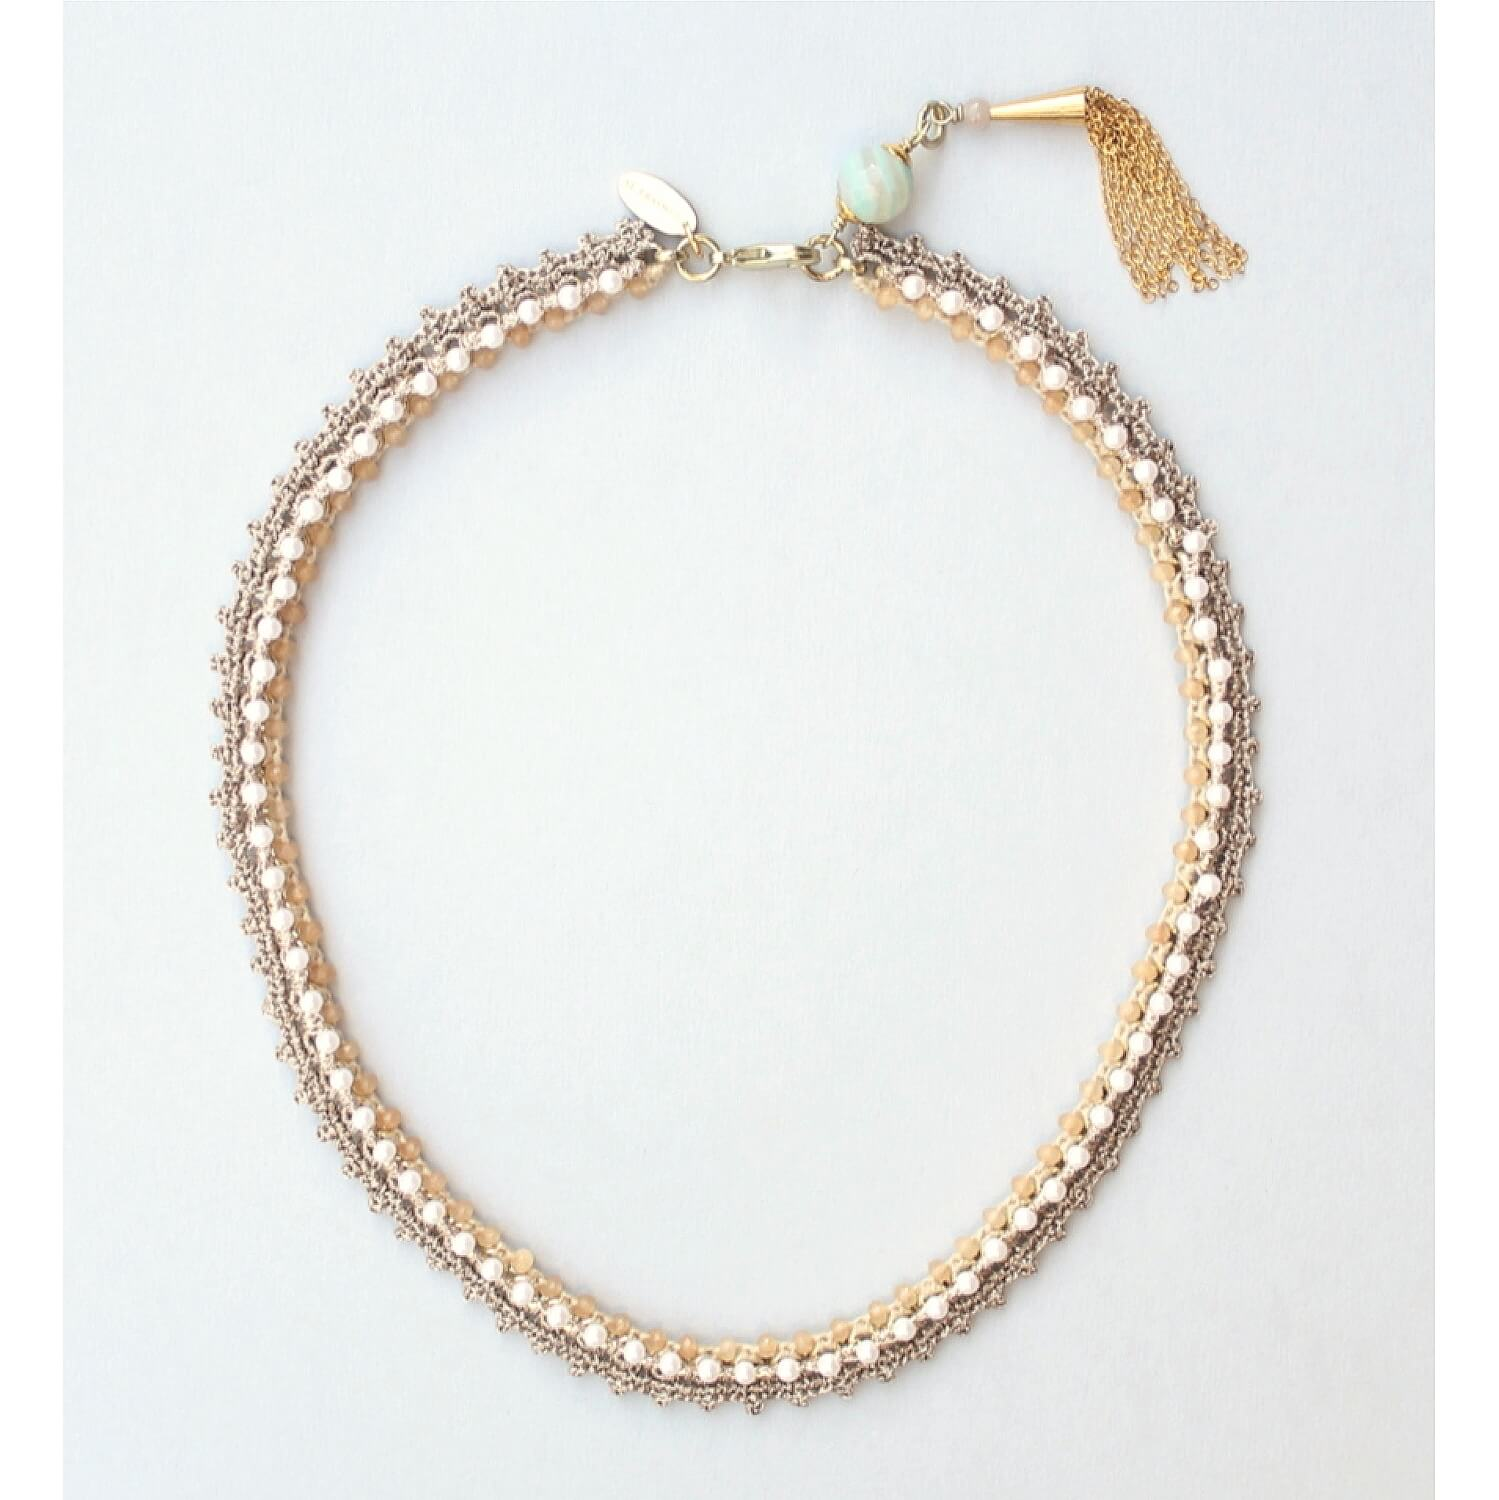 Aphrodite Beaded Crochet Choker Necklace - Ivory Sun Stone